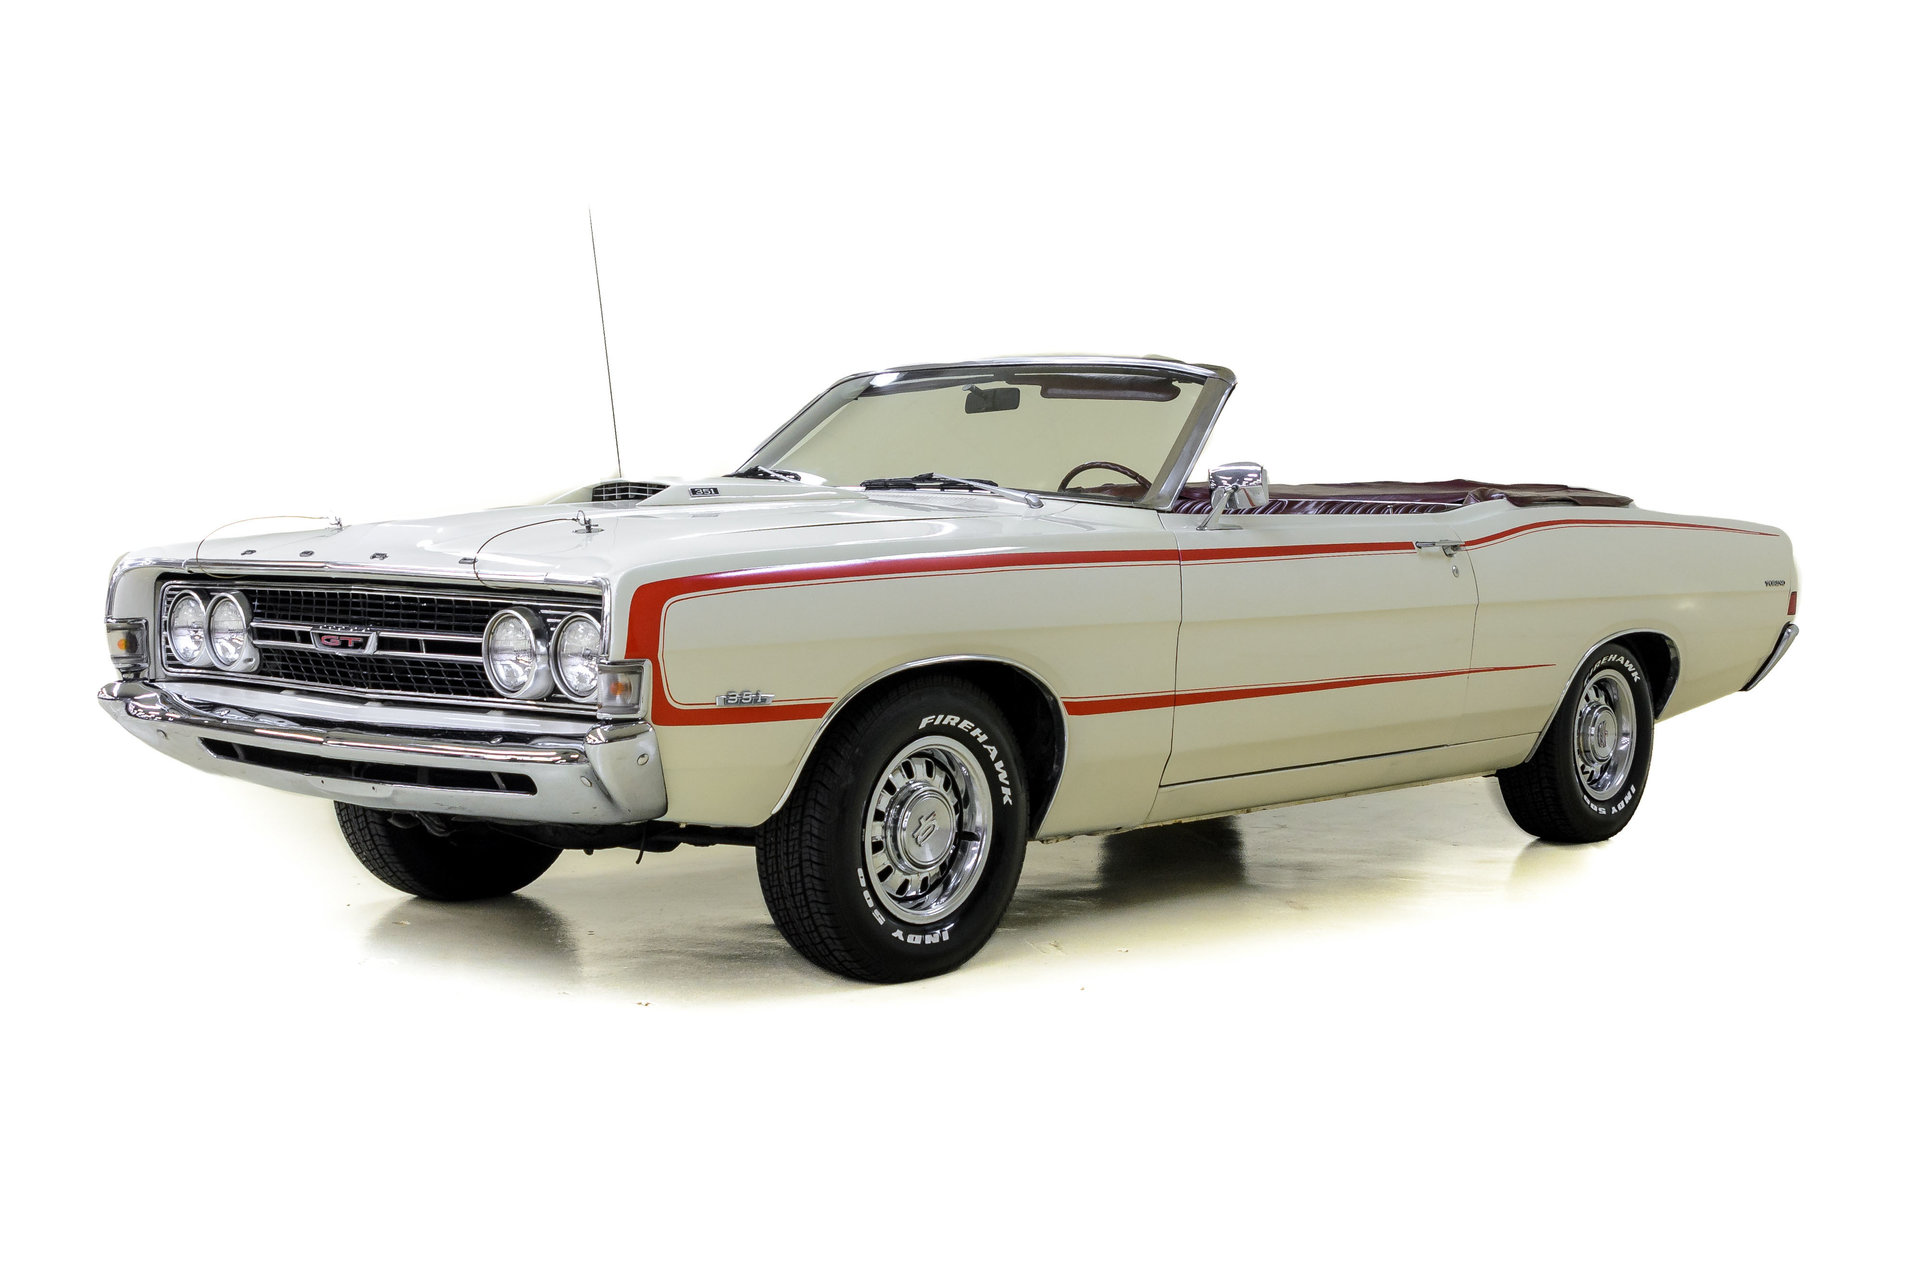 1968 ford torino convertible for sale 84255 mcg. Black Bedroom Furniture Sets. Home Design Ideas